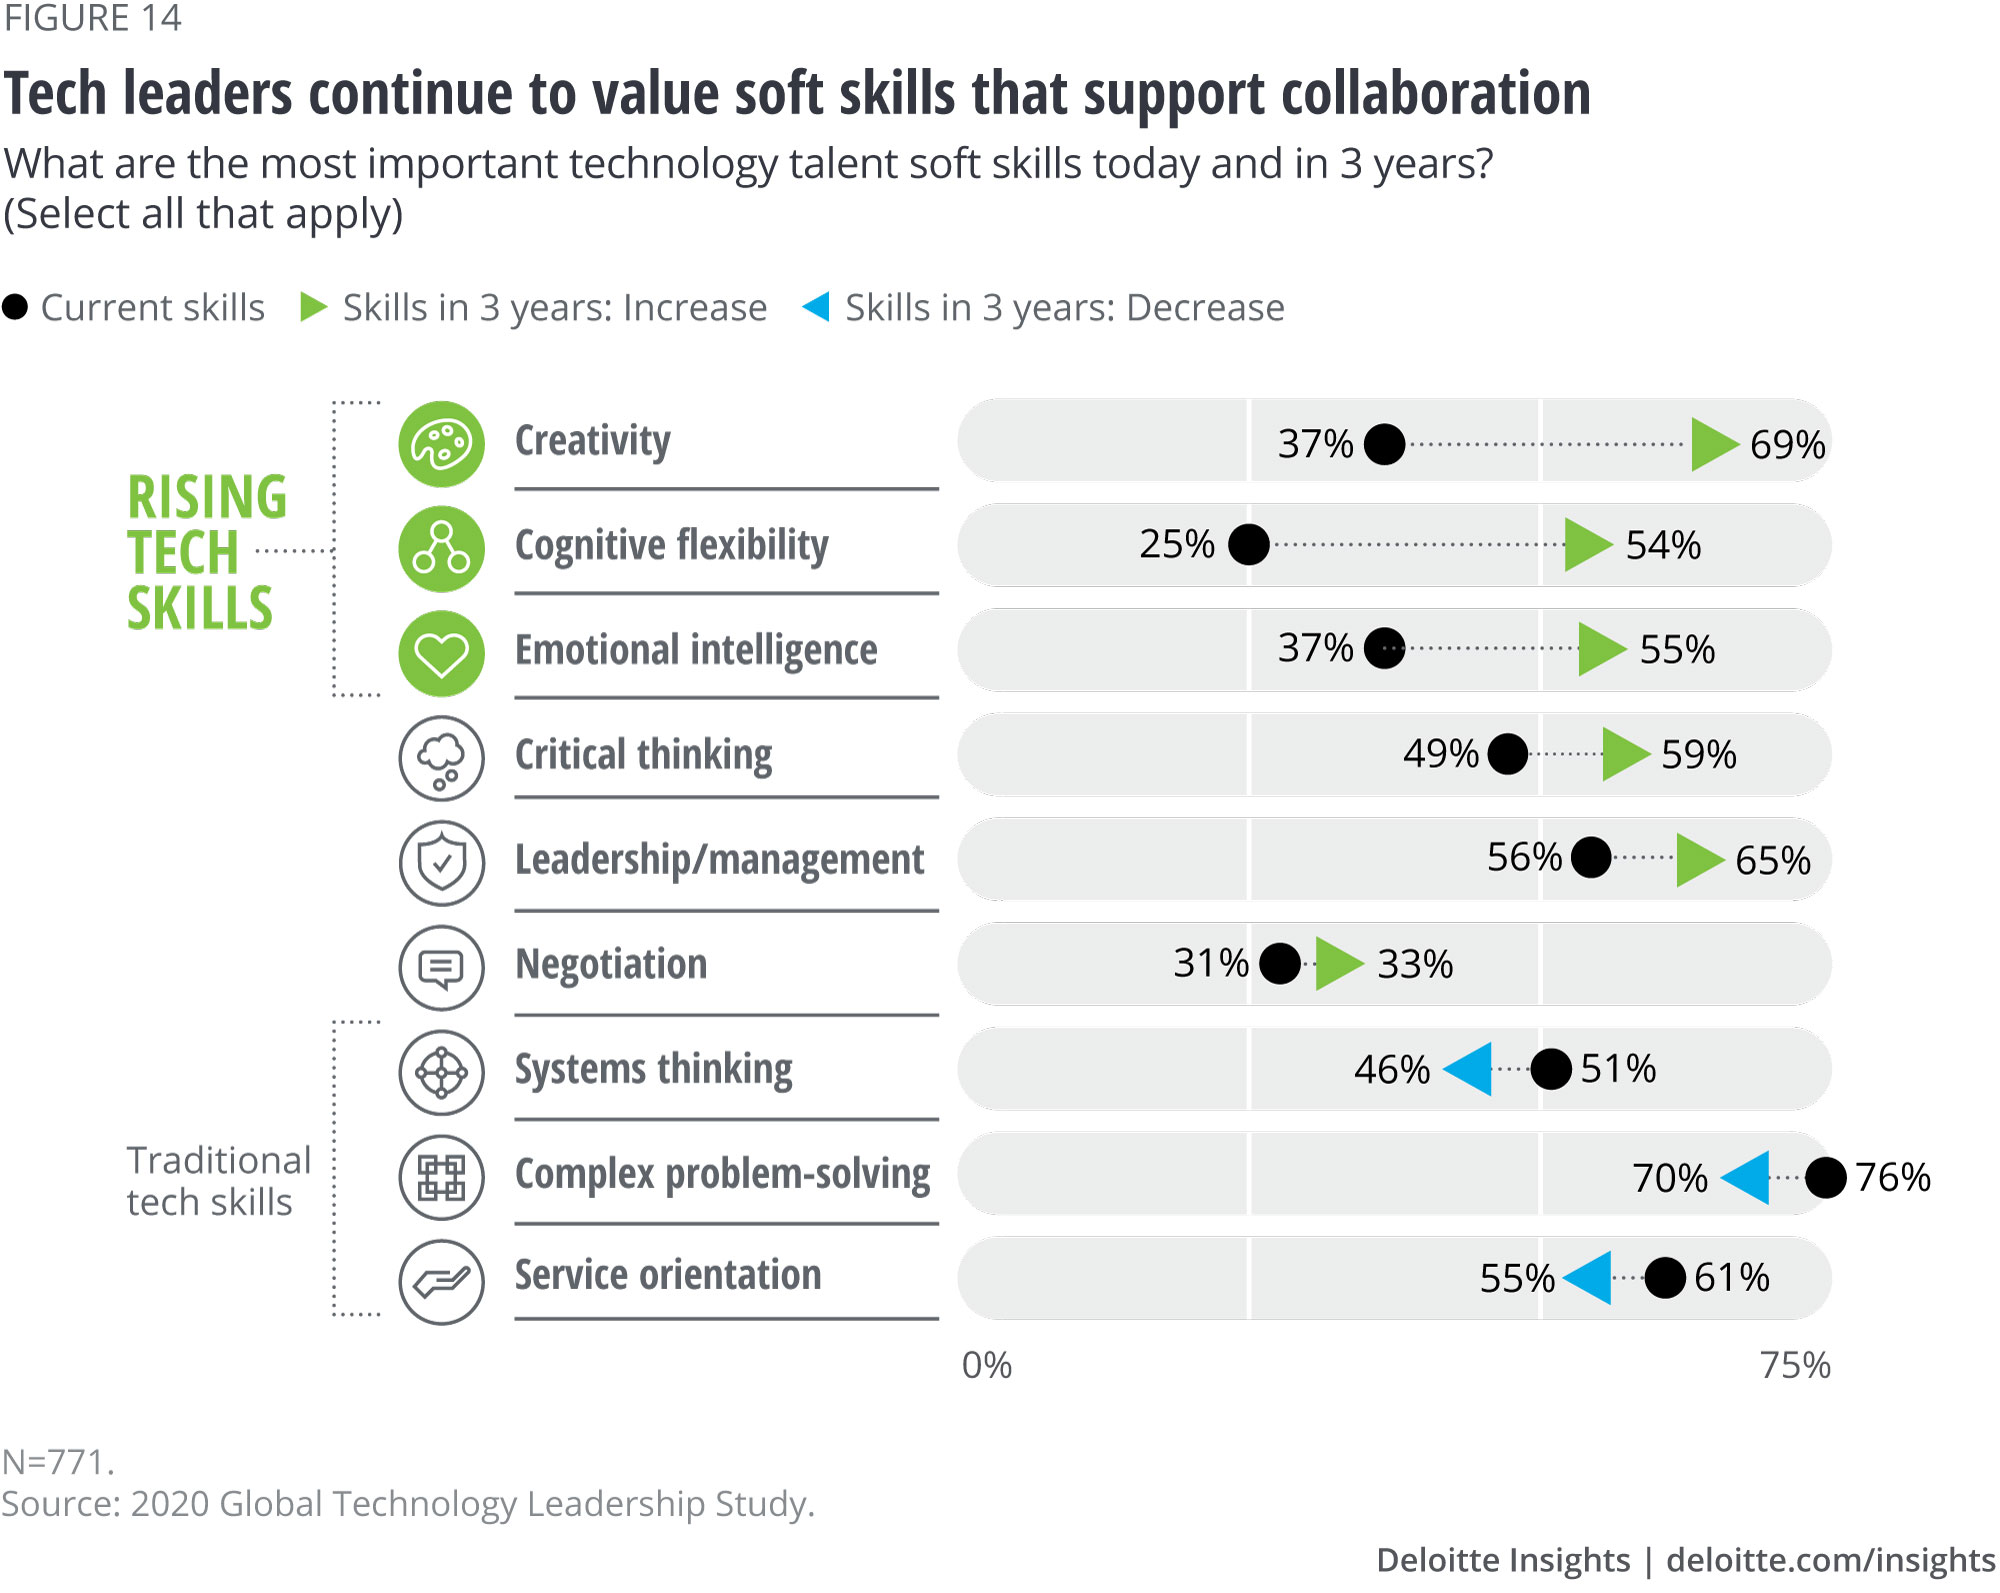 Tech leaders continue to value soft skills that support collaboration